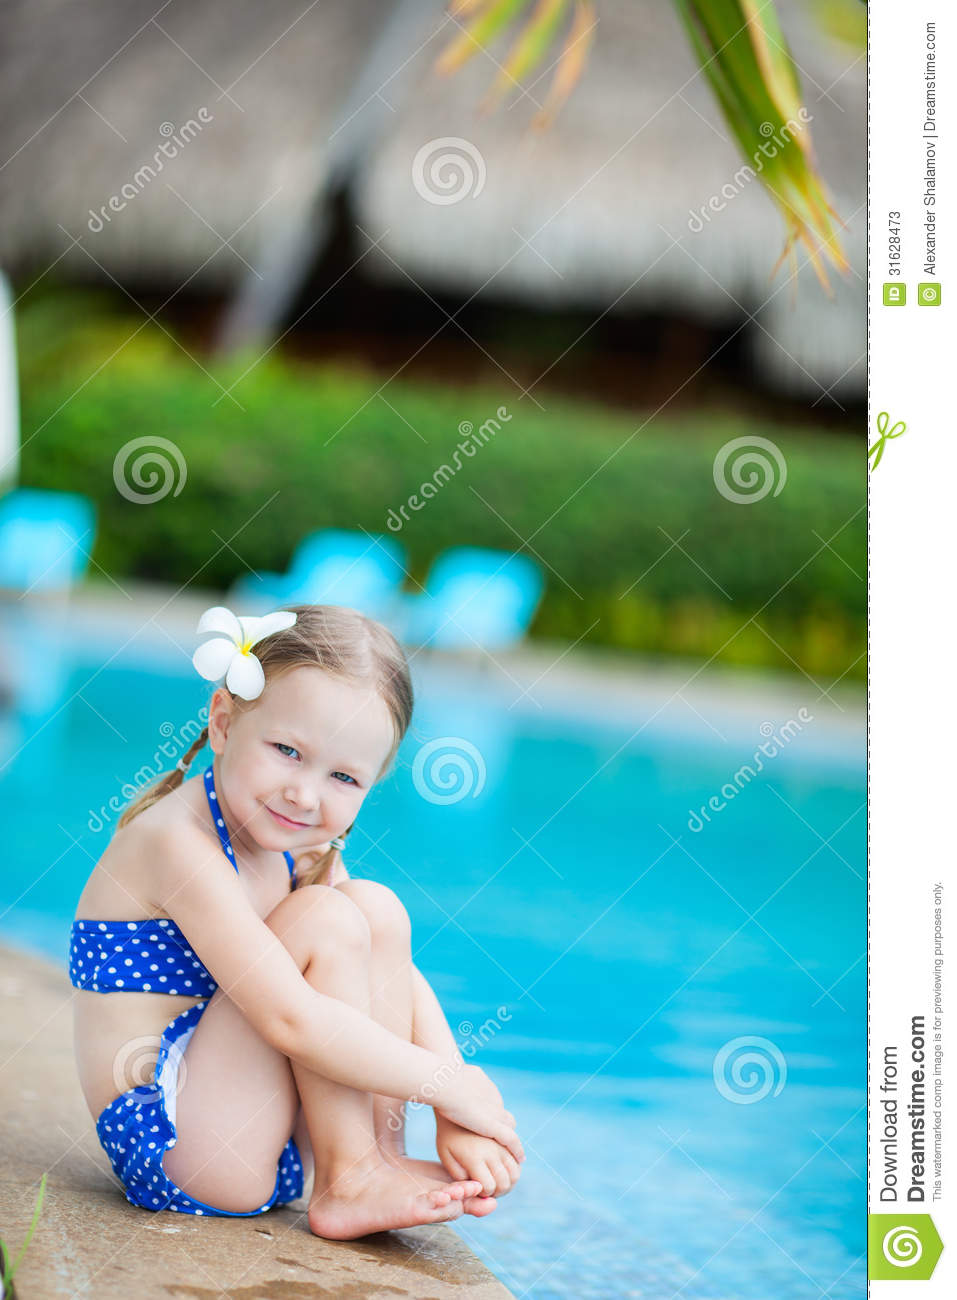 Little Girl In Pool Pics Images